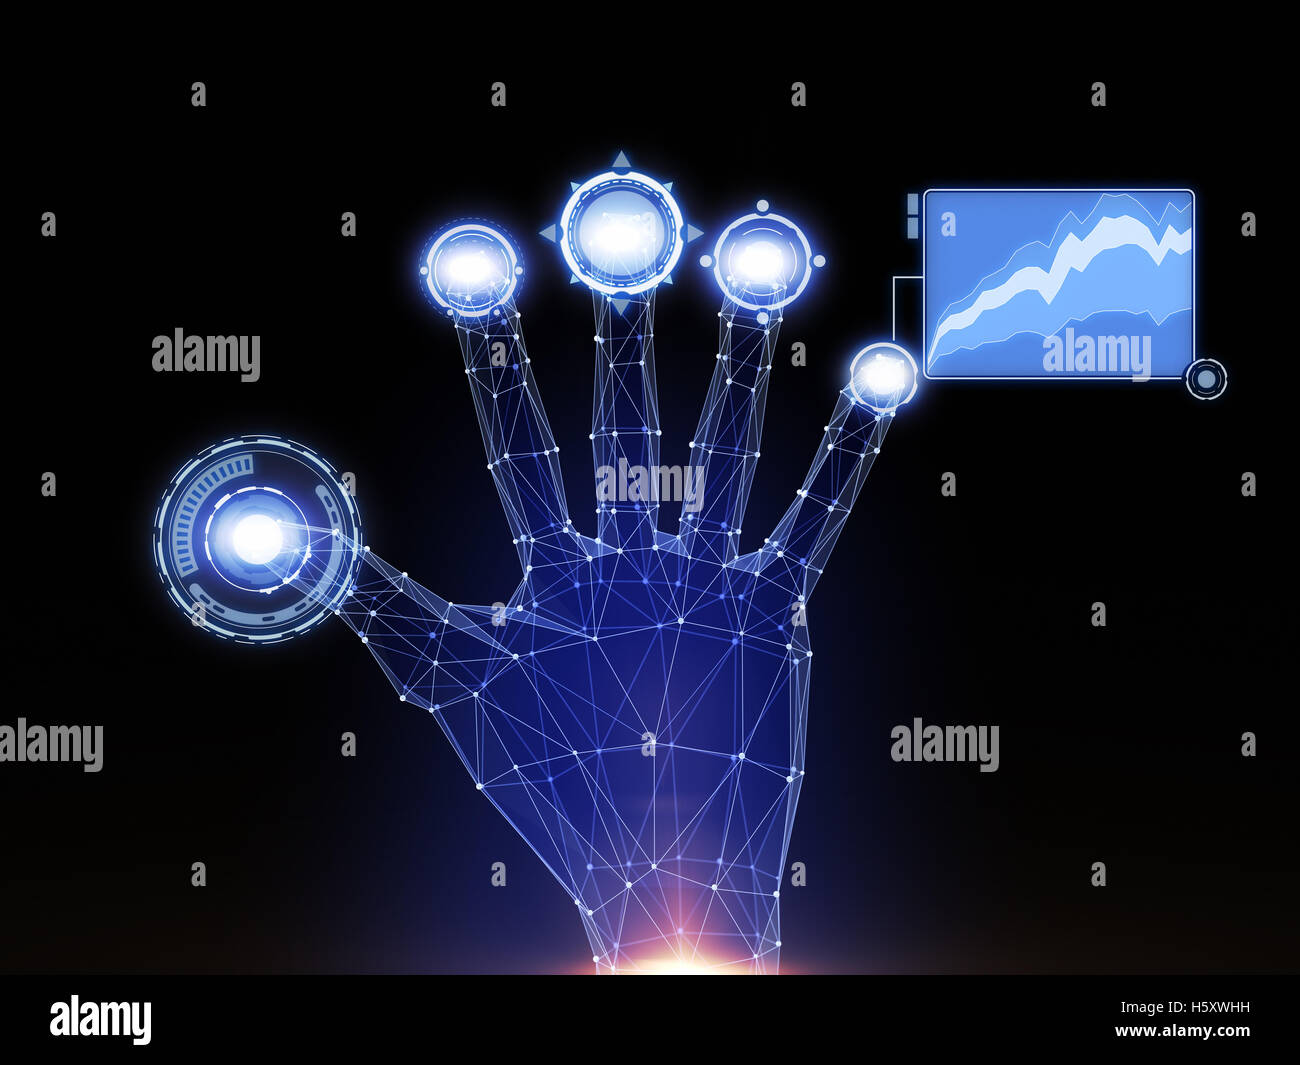 Digital hand touches Sci-Fi interface - Stock Image